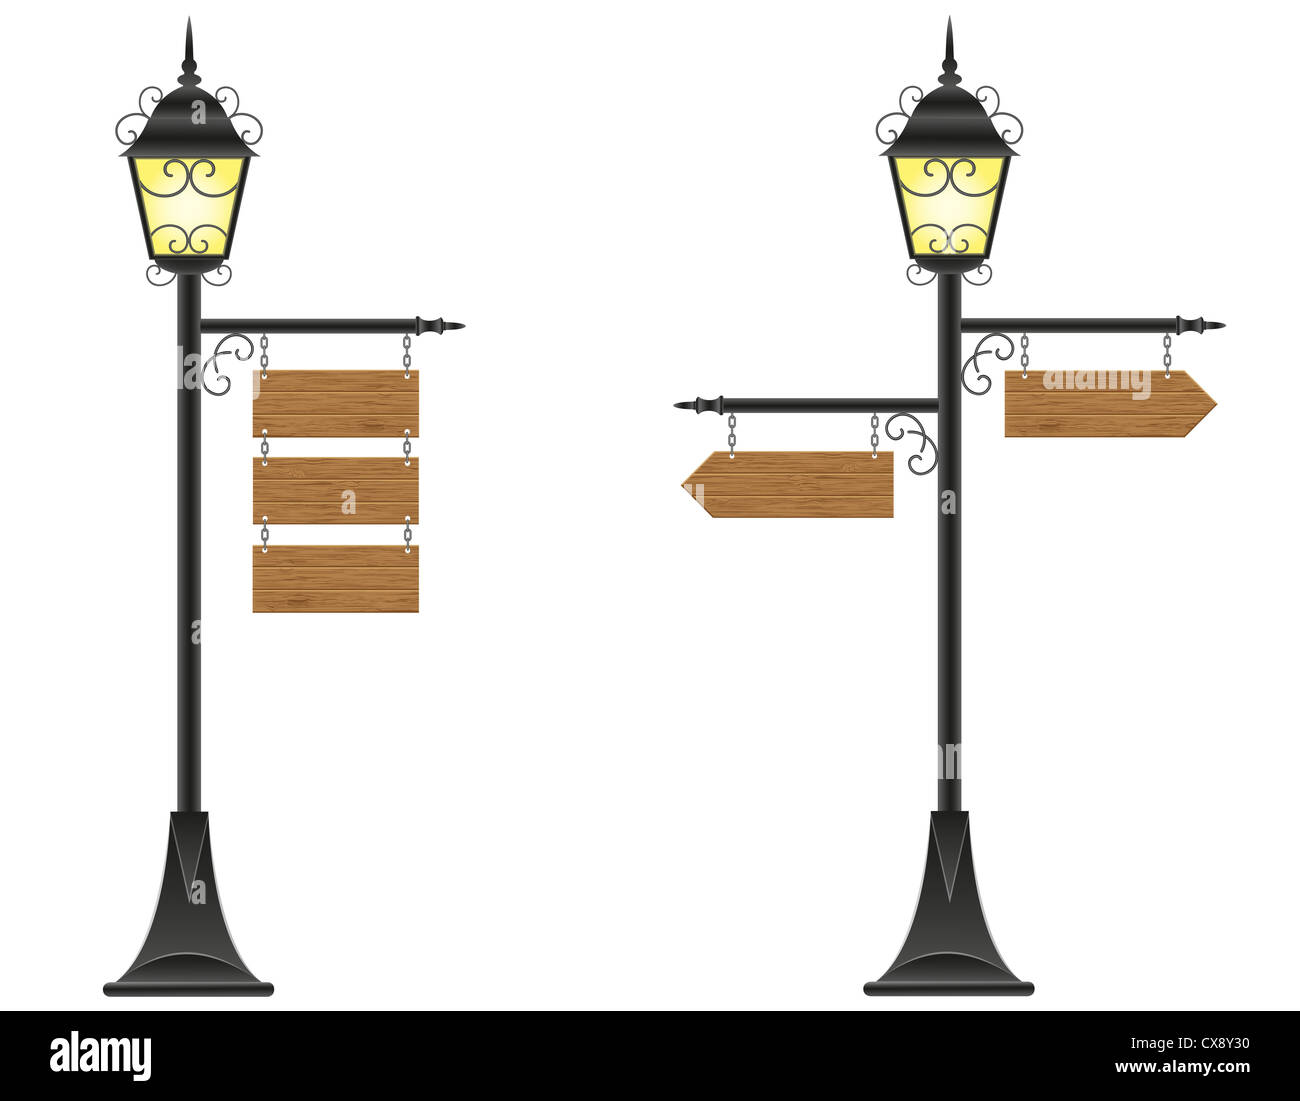 wooden boards signs hanging on a streetlight illustration isolated on white background Stock Photo